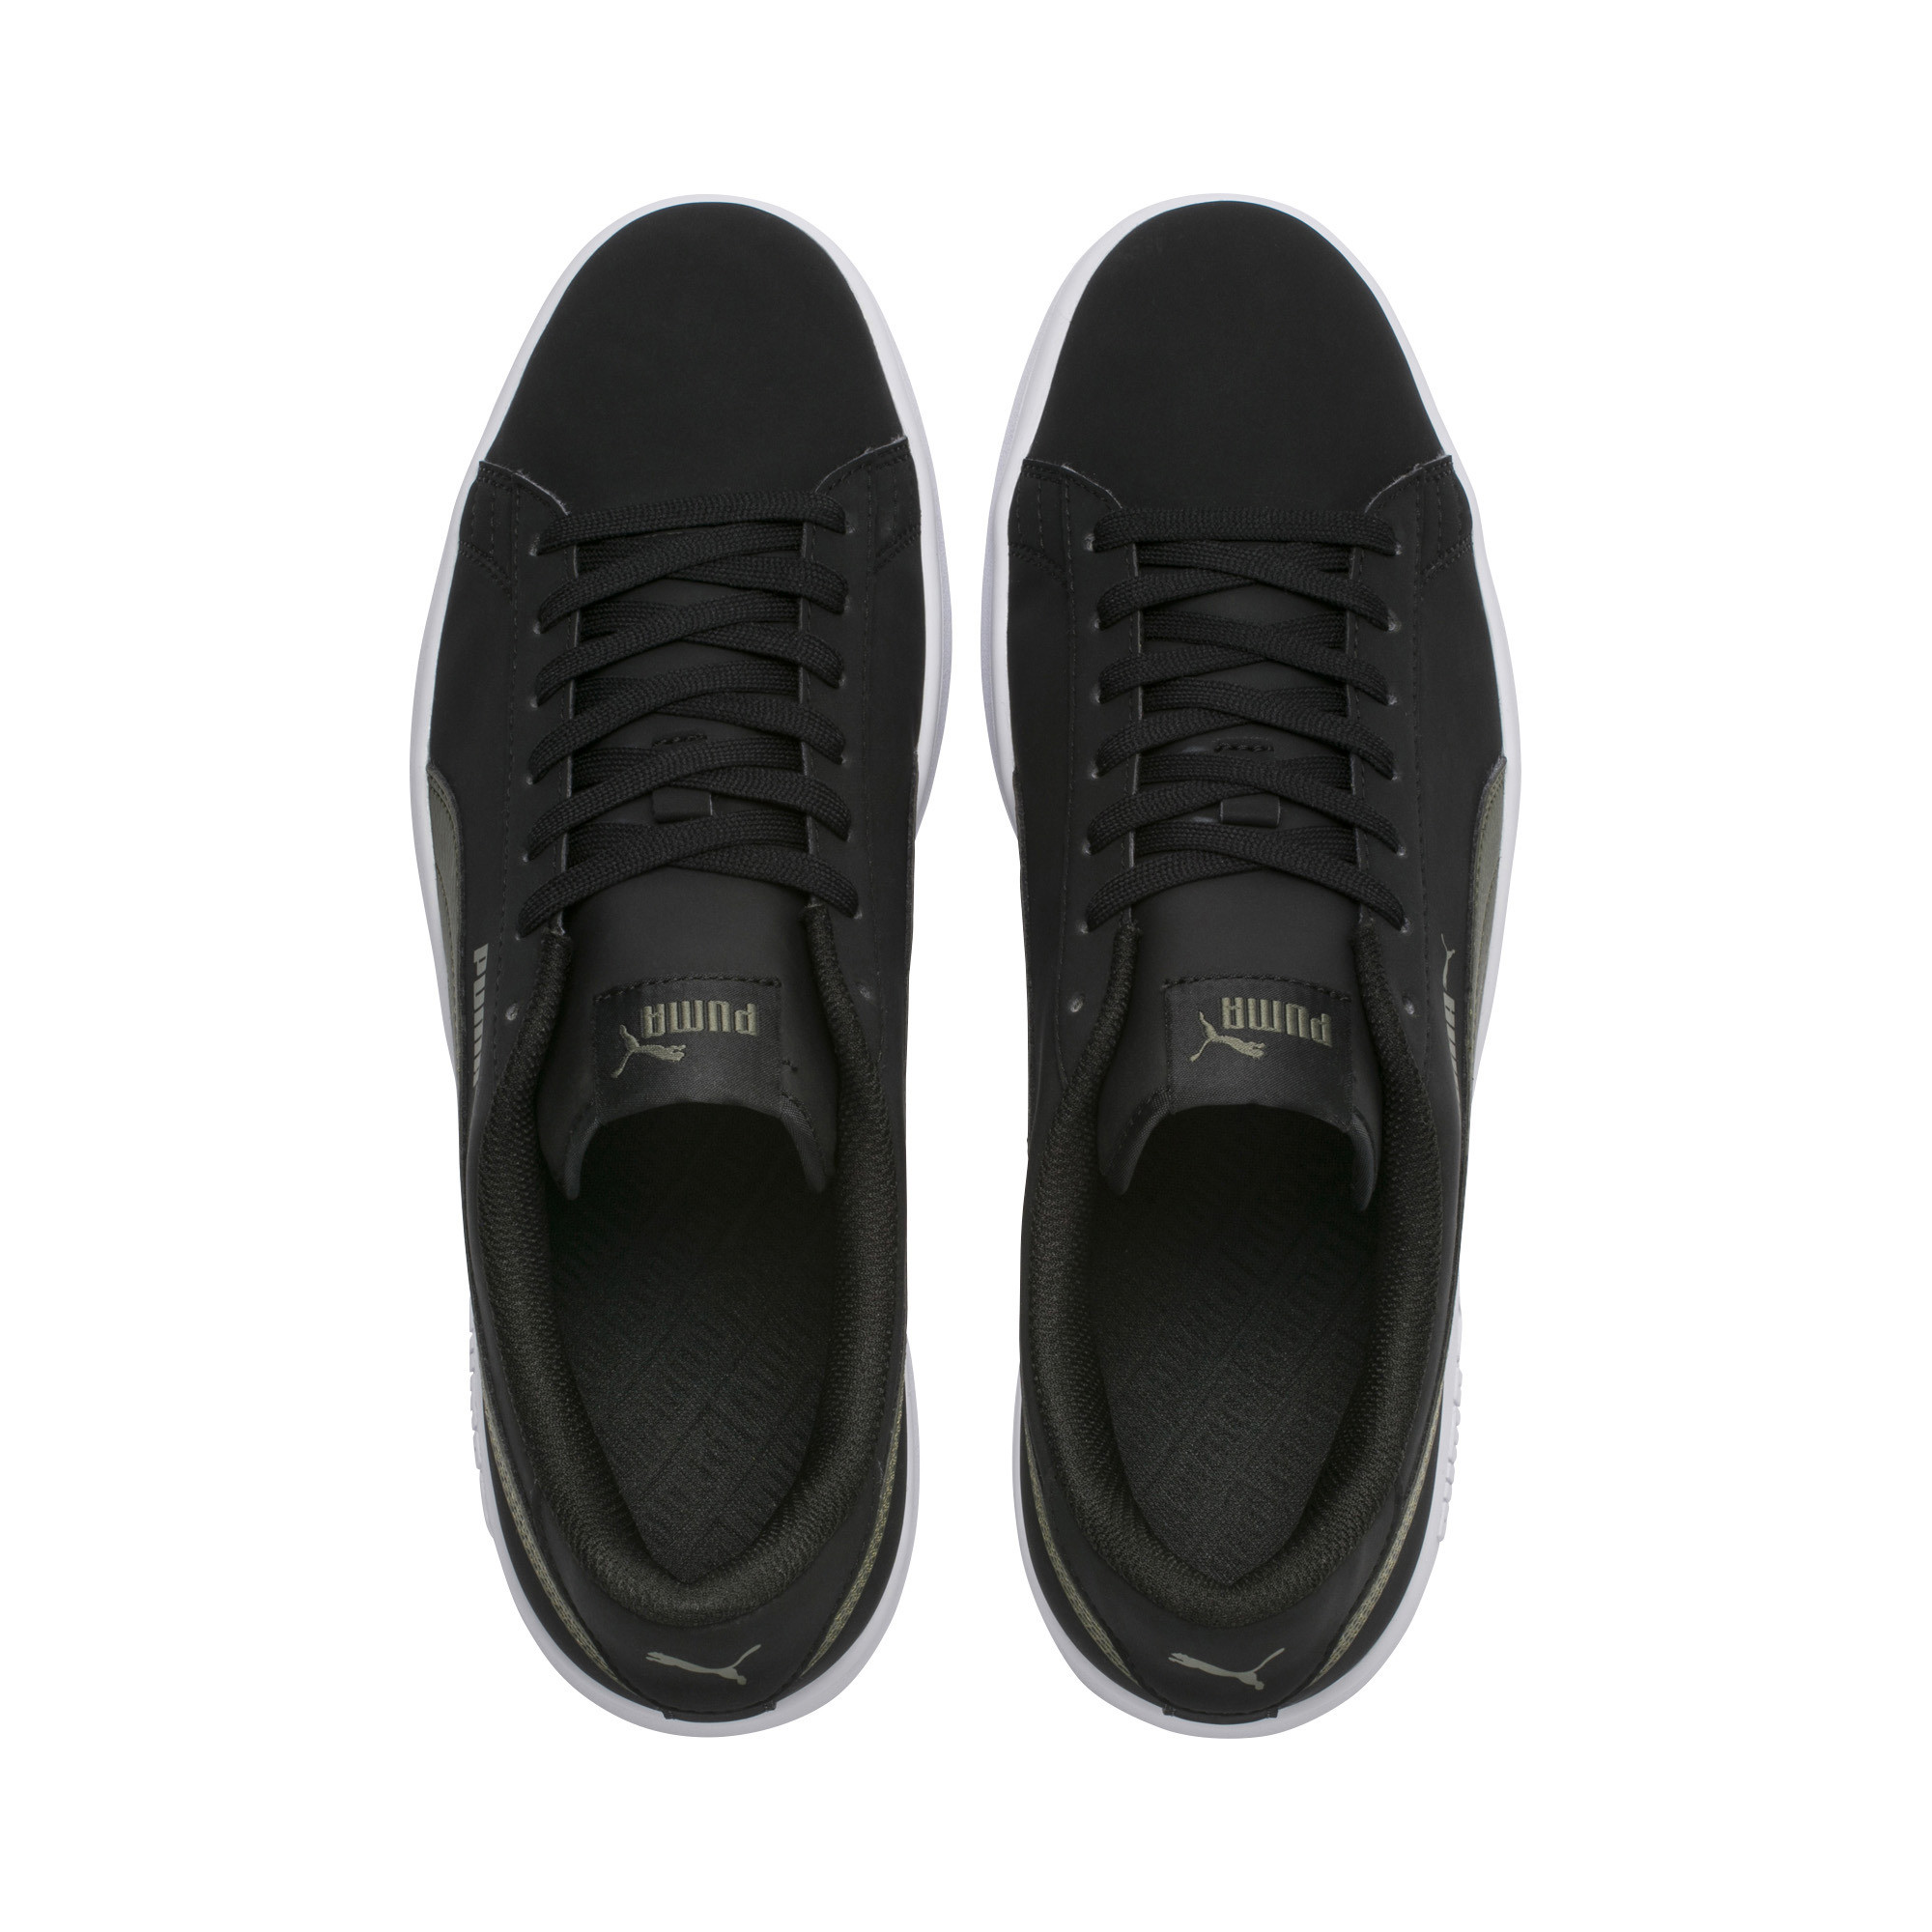 PUMA-PUMA-Smash-v2-Nubuck-Men-039-s-Sneakers-Men-Shoe-Basics thumbnail 7